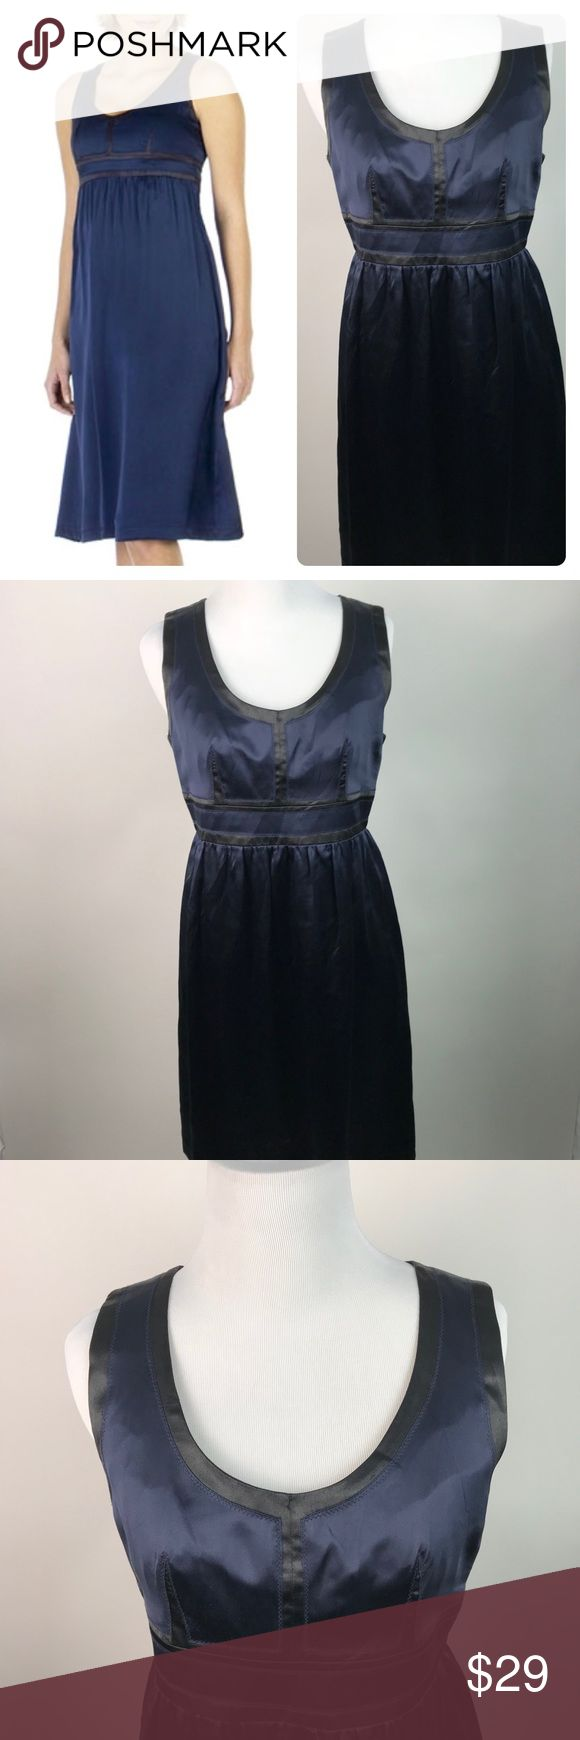 Proenza Schoeler for Target Silk Dress 7 AK27 Proenza Schouler For Target Women's 100% Silk Empire Waist Dress Size 7 AK27 EUC...No stains holes rips or pilling  GORGEOUS! This dress by upscale designer, PROENZA SCHOULER, for Target, features a beautiful 100% silk textile, in an indigo blue hue with black patchwork accents at the bodice. It boasts a scoop neckline, empire waist, full skirt, back zip; fully lined. Perfect for any evening event, party, etc, or pair with black blazer for career…